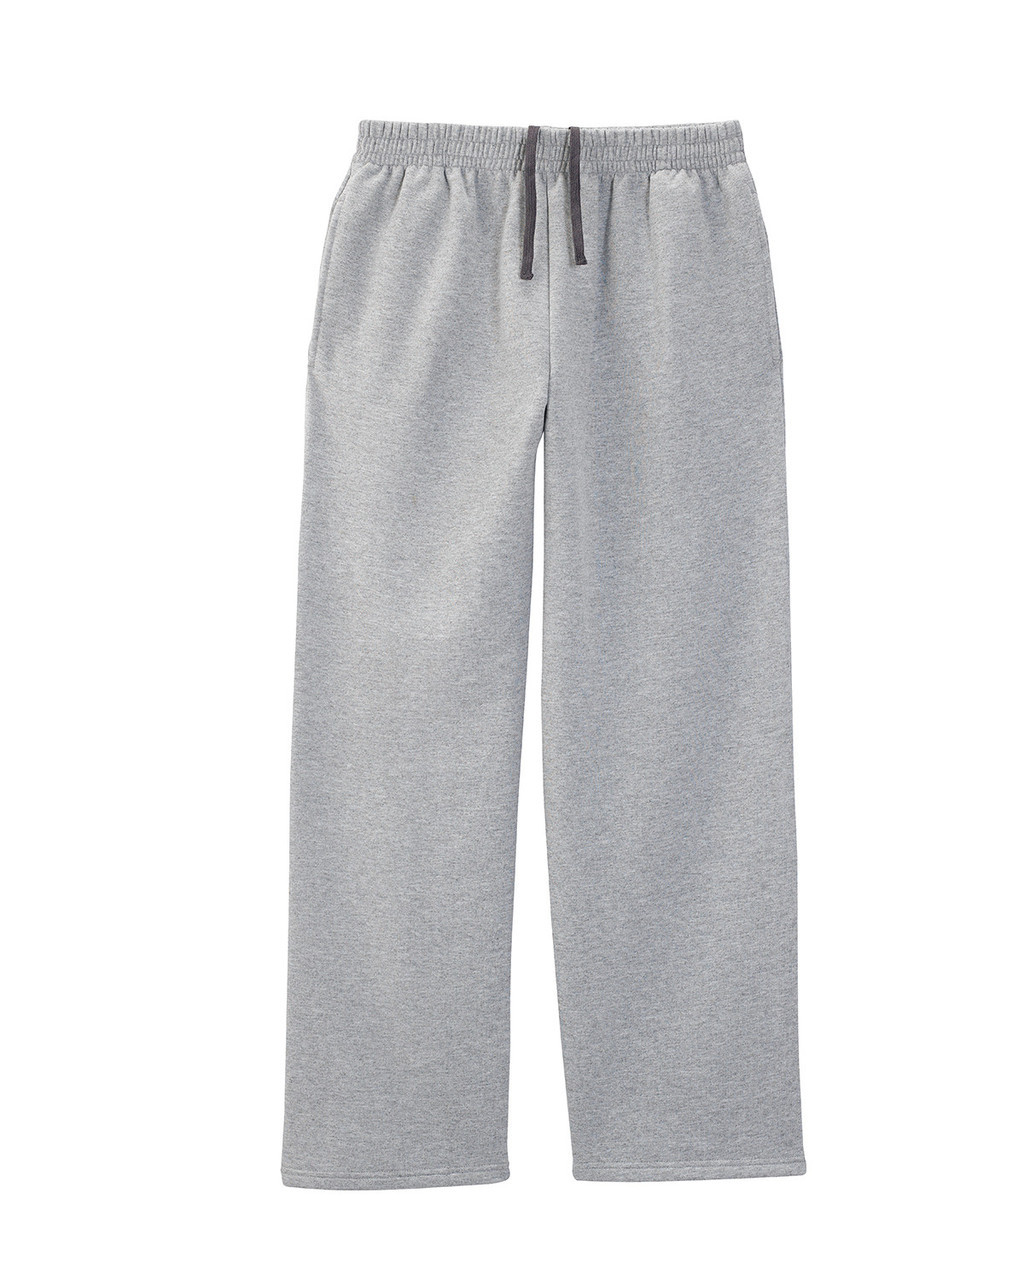 Athletic Heather SF74R Fruit of the Loom Softspun Open Bottom Pocket Sweatpants | Blankclothing.ca